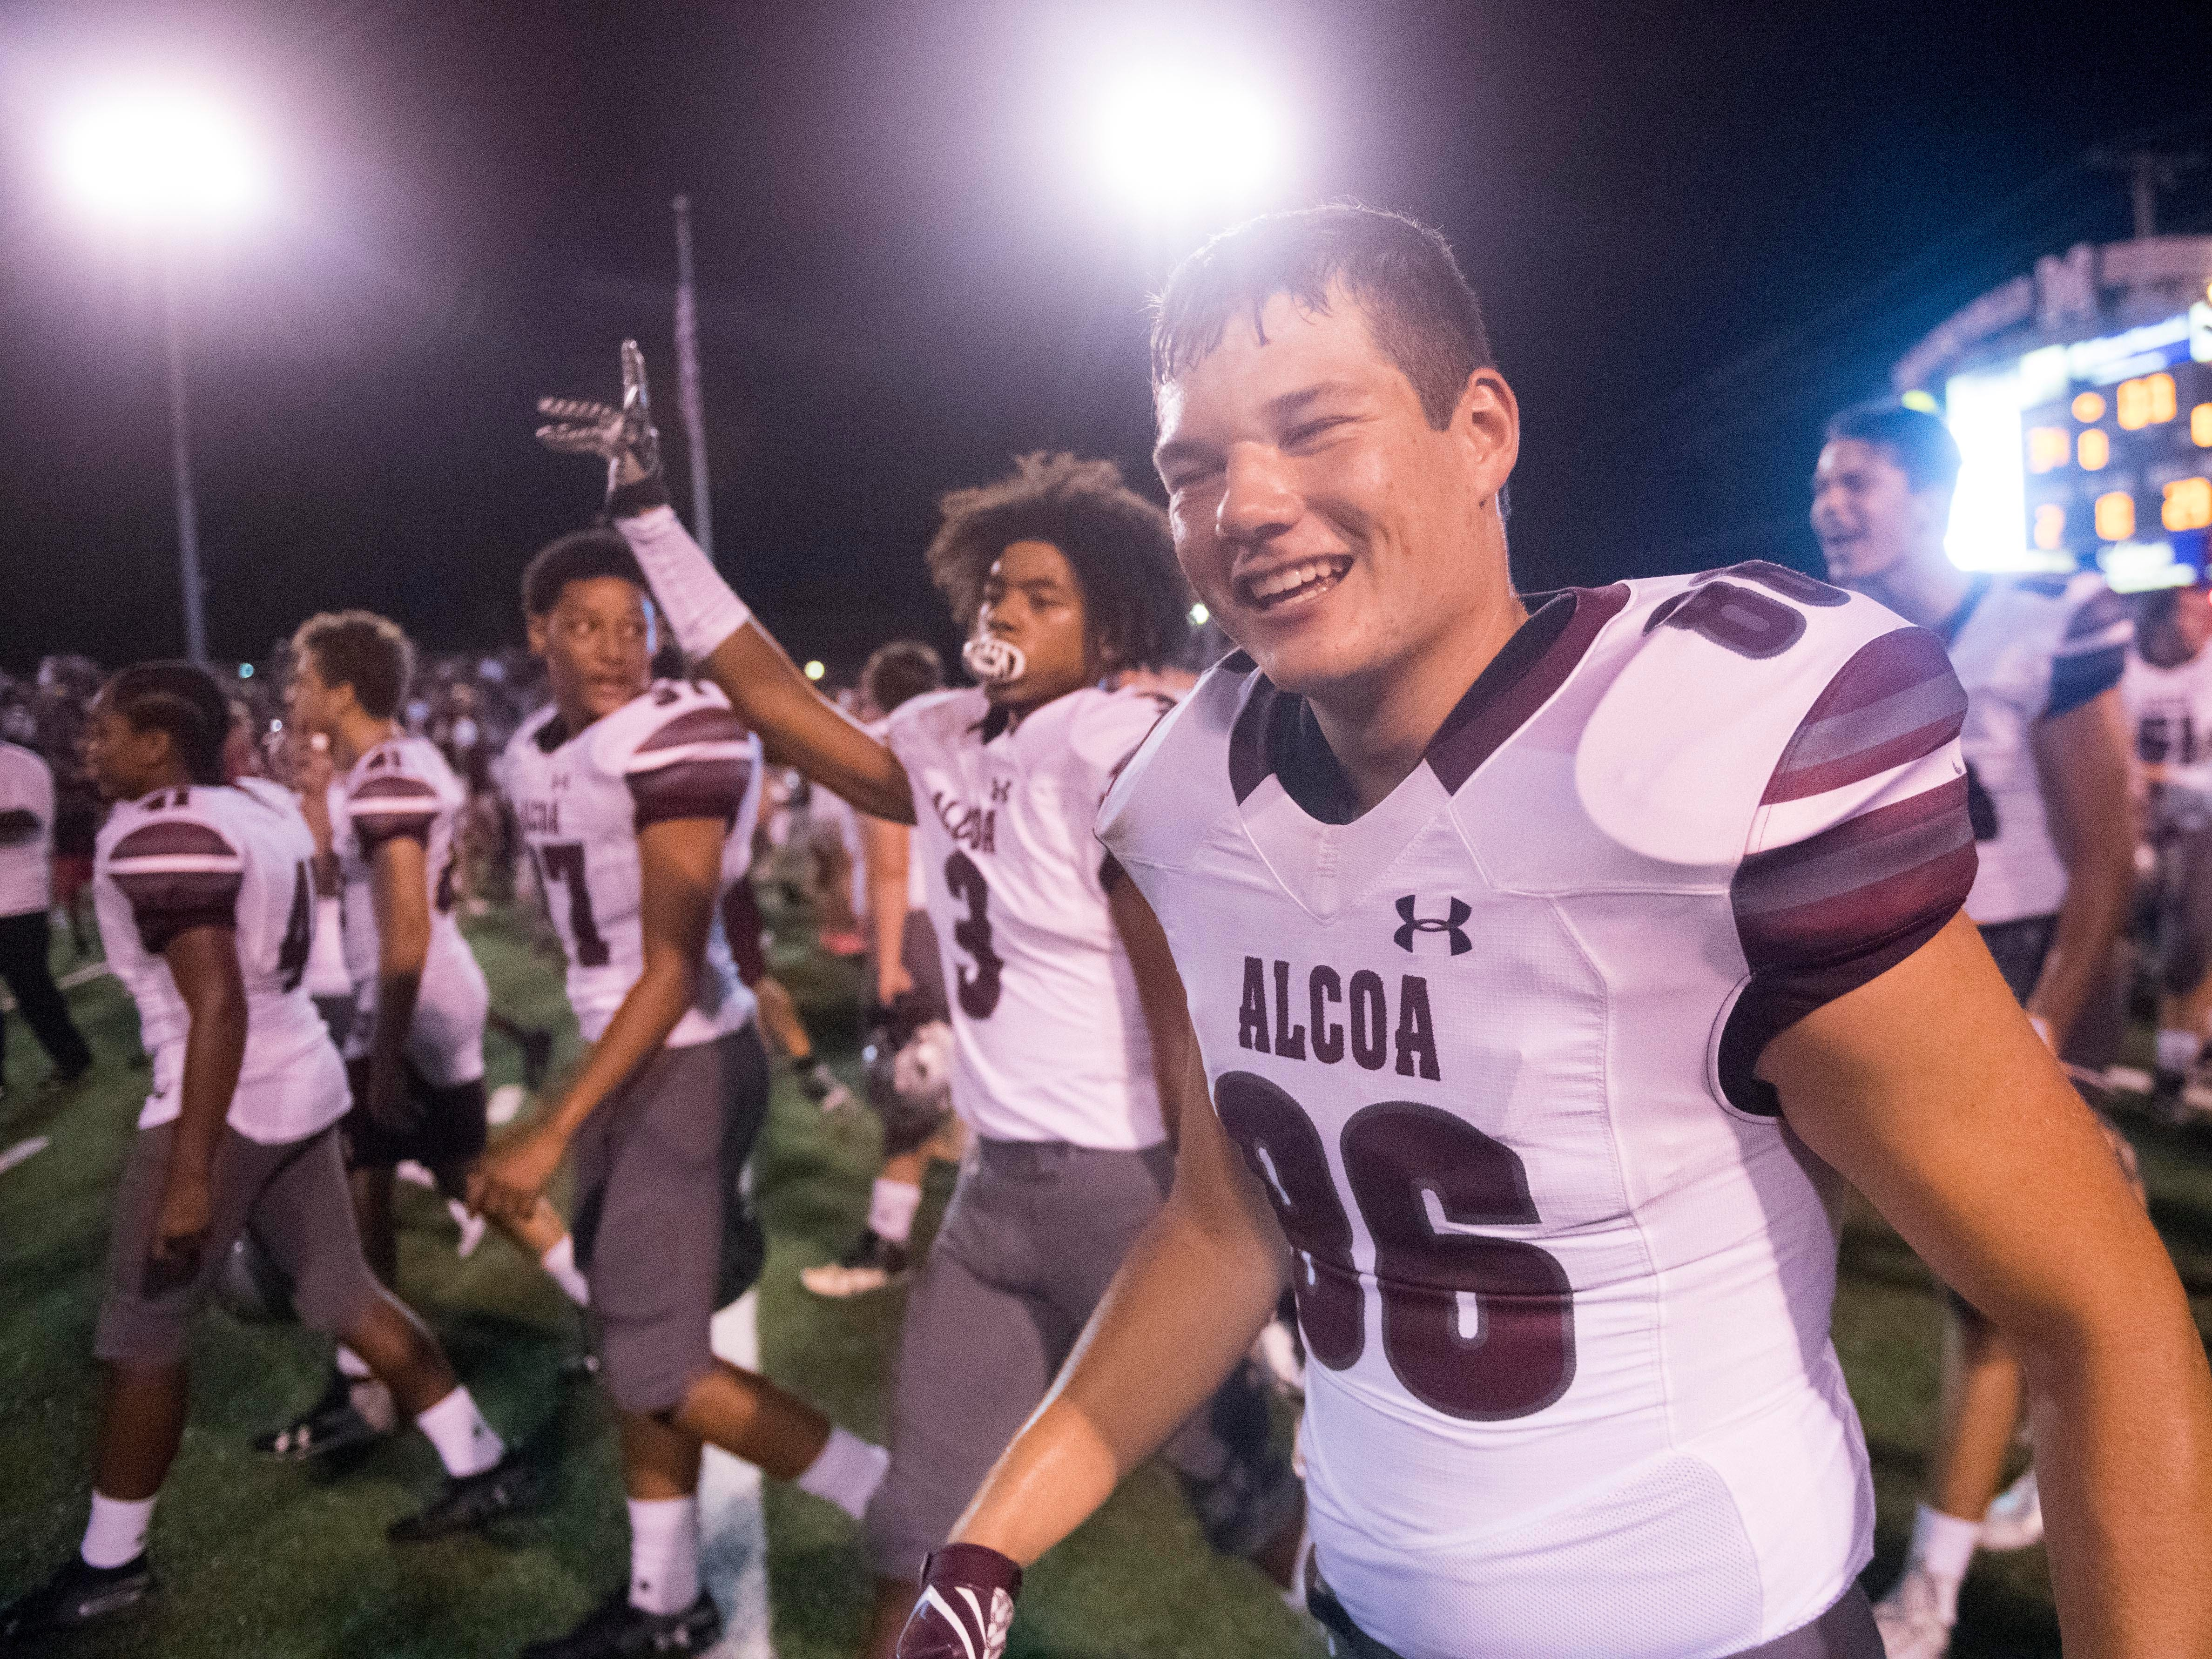 Alcoa's Caleb Copeland (86) celebrates after the win against Maryville on Friday, September 7, 2018.